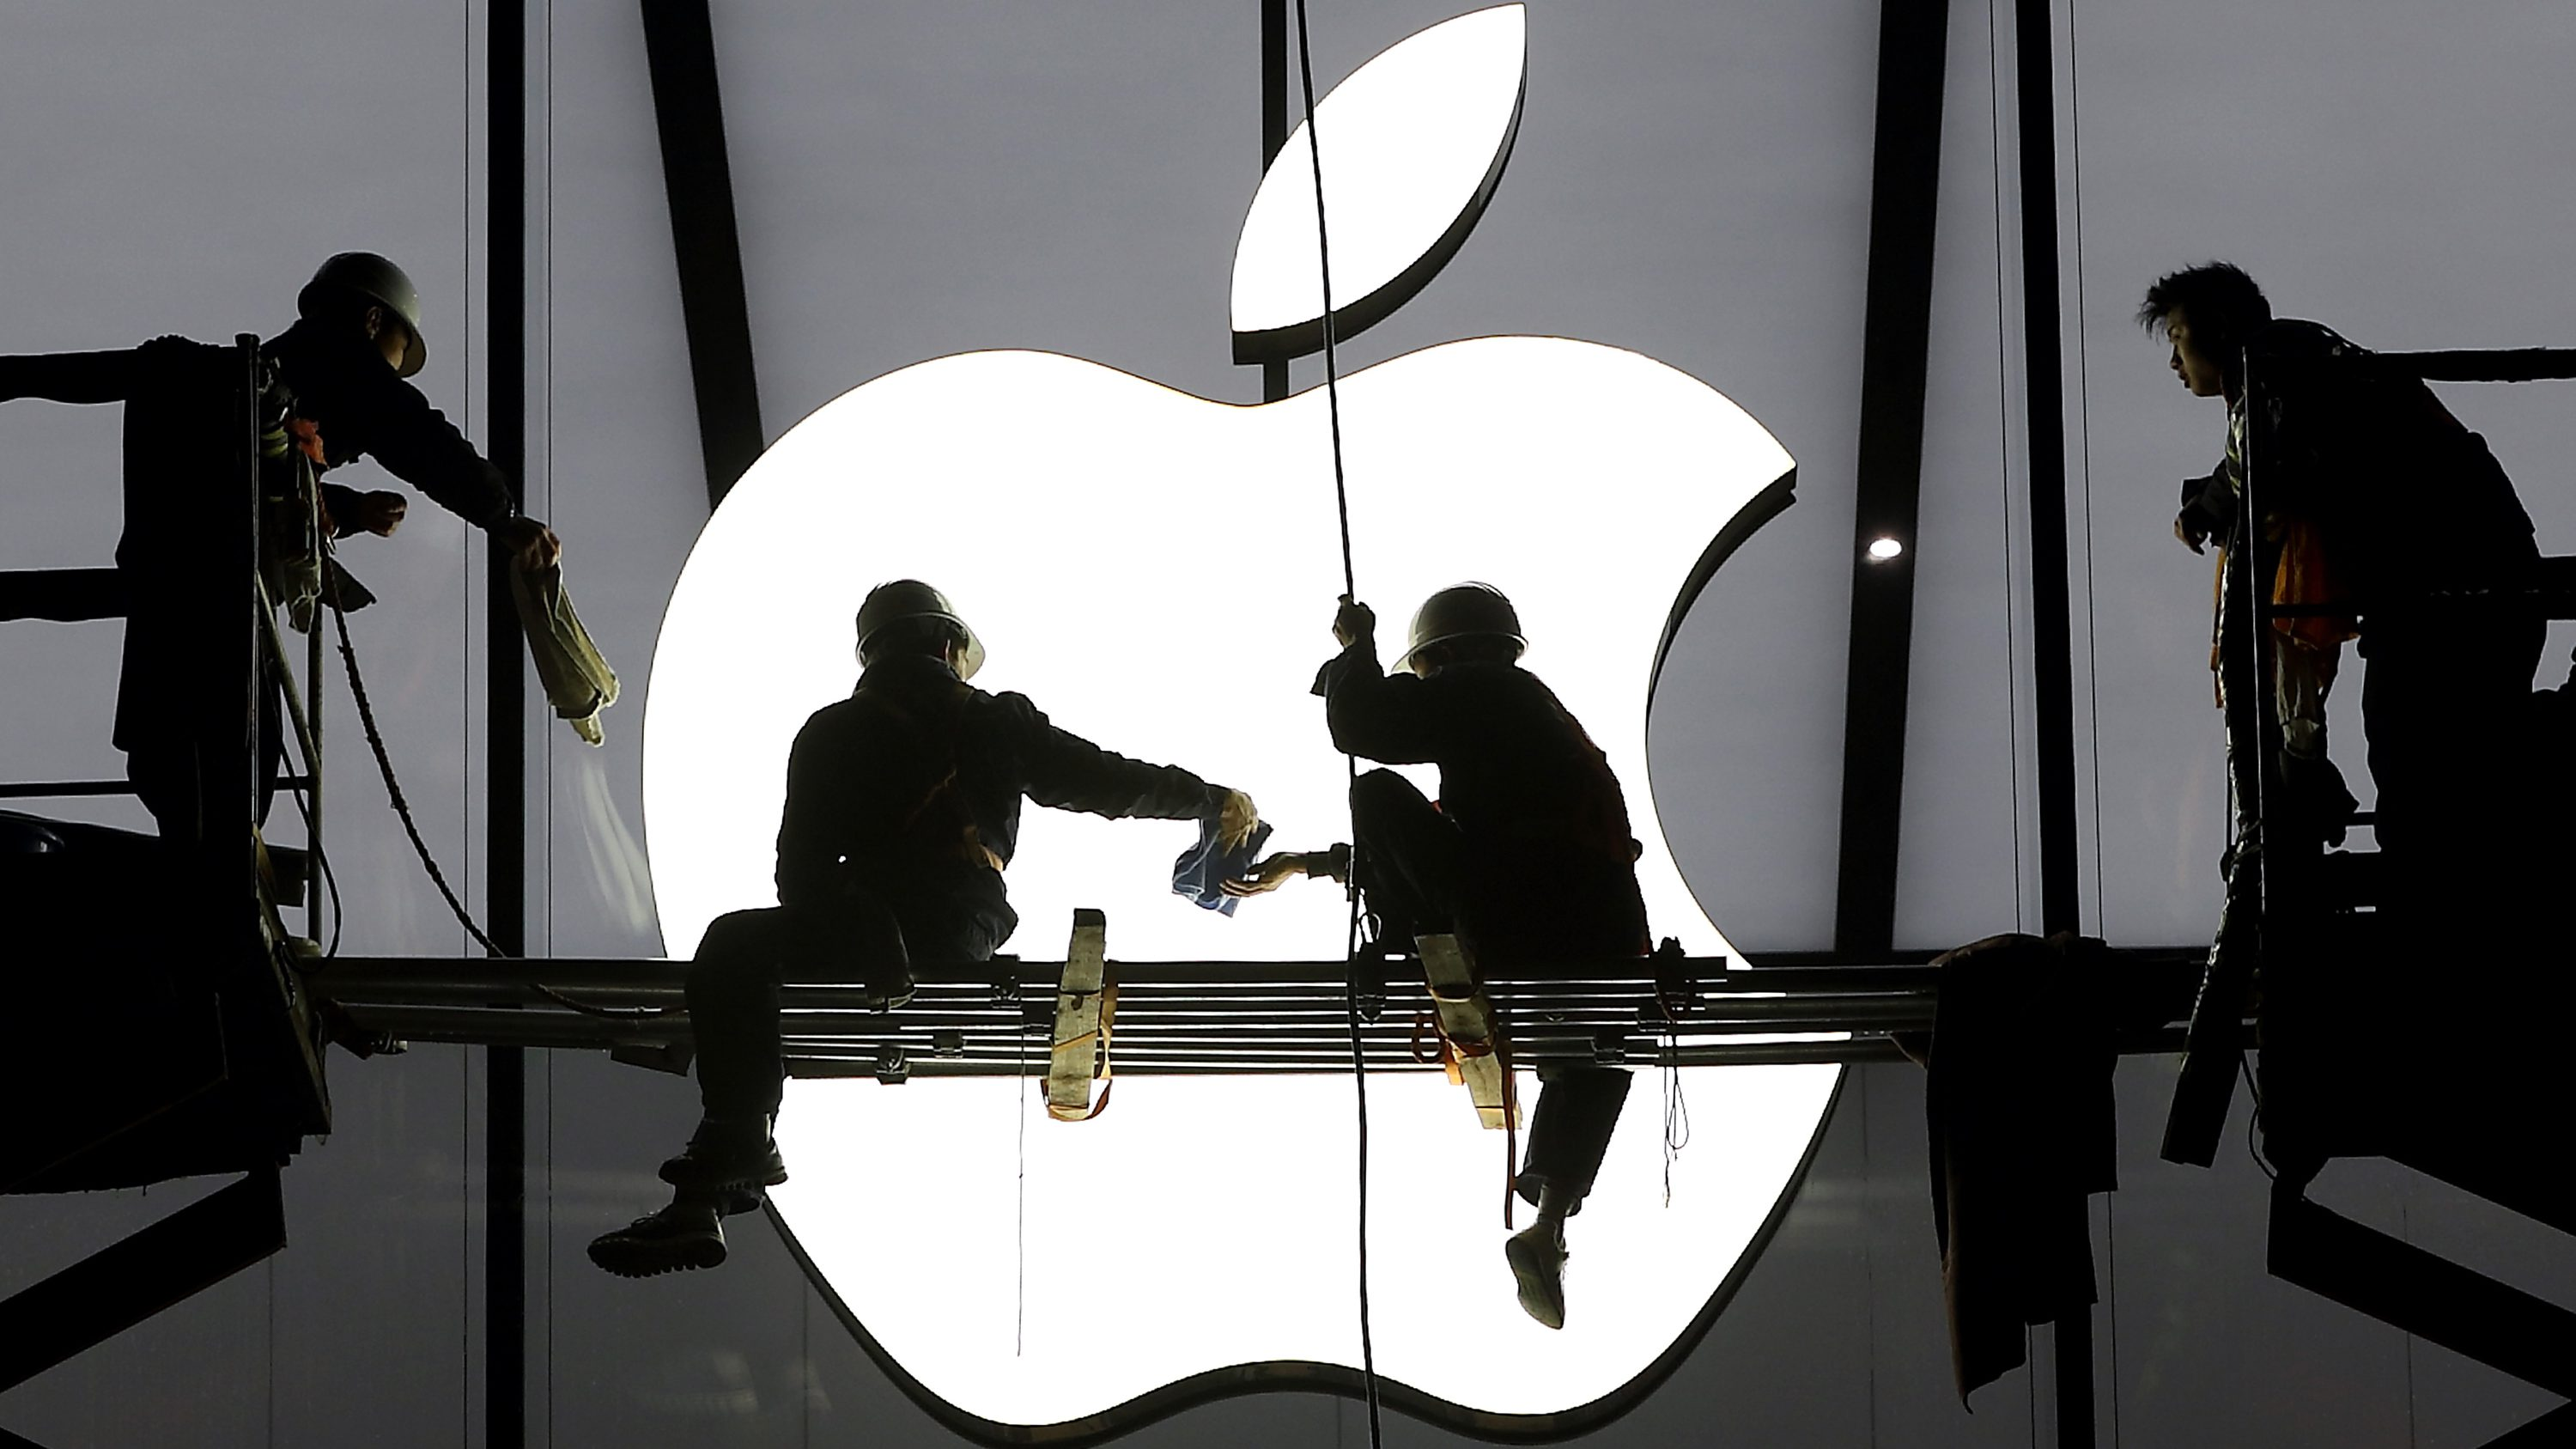 Workers prepare for the opening of an Apple store in Hangzhou, Zhejiang province, January 23, 2015. Apple Inc chip supplier TSMC reported record net profit on Thursday and said the proliferation of low-priced, chip-hungry smartphones in China could see the company expand production in the world's biggest handset market. Picture taken January 23, 2015. REUTERS/Chance Chan (CHINA - Tags: BUSINESS TELECOMS) - RTR4MPEF